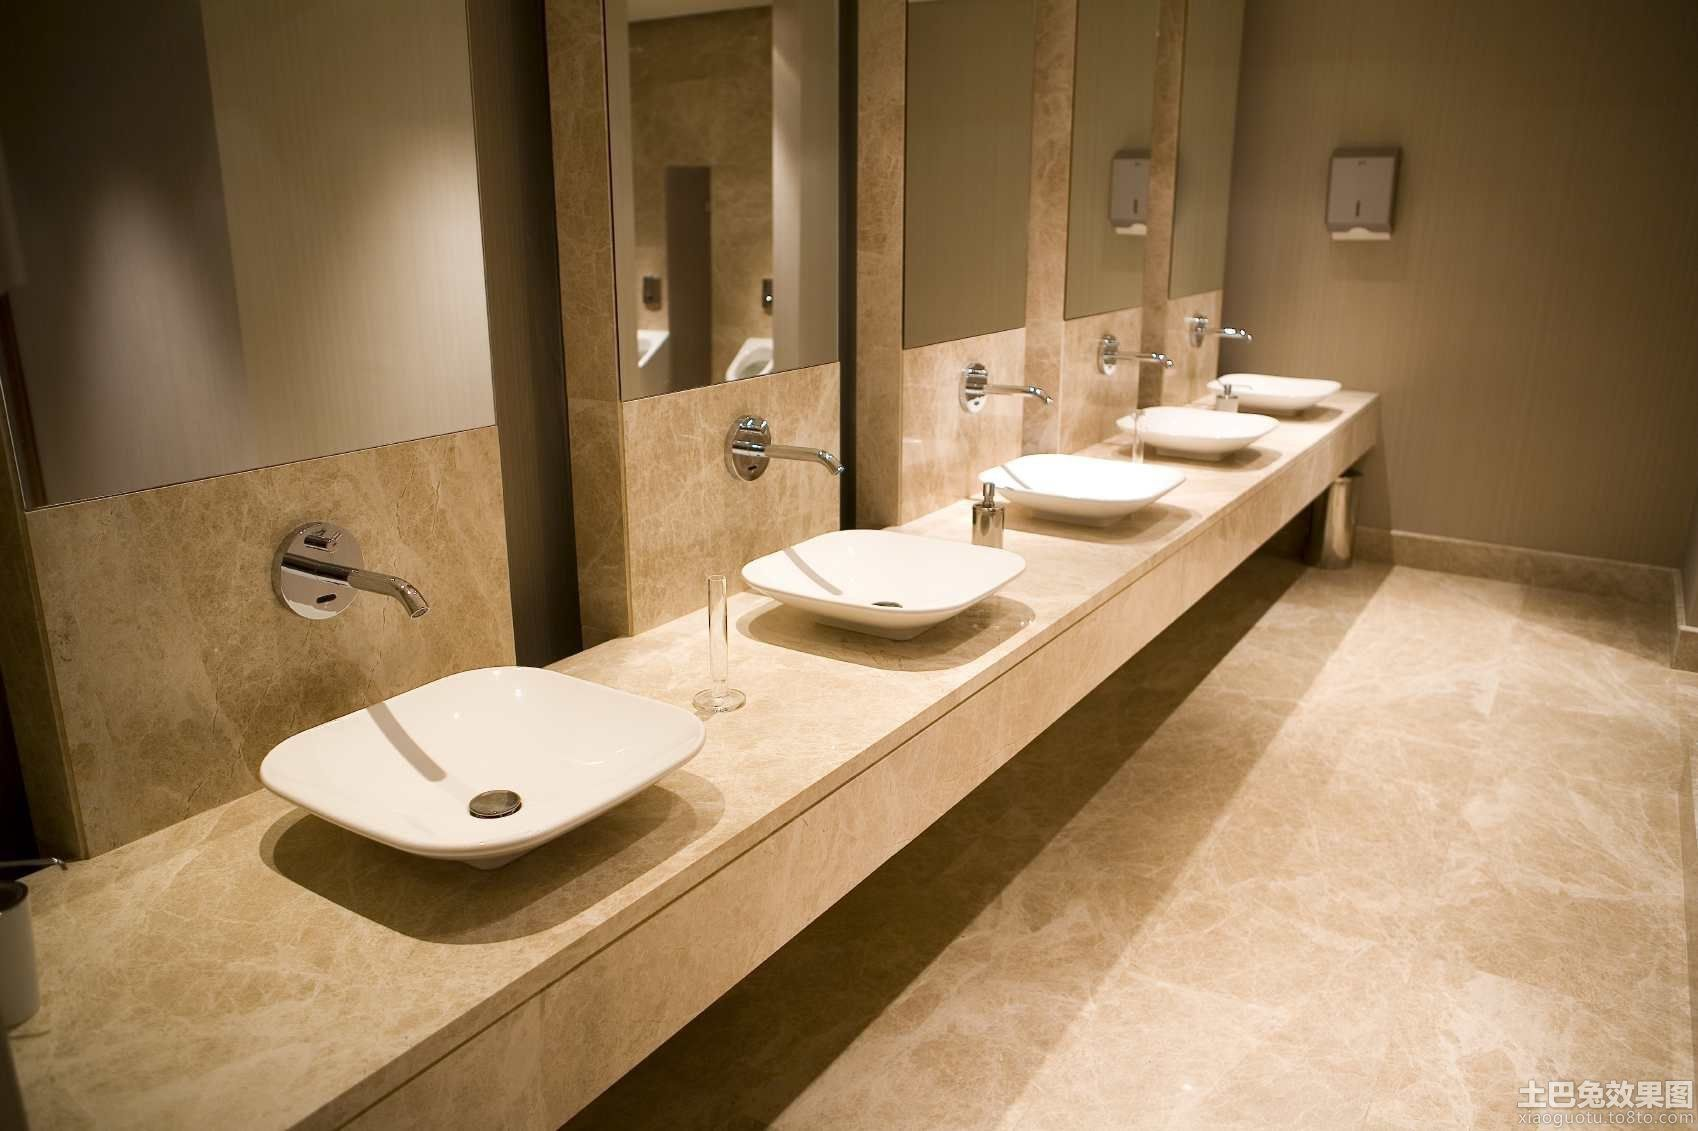 Commercial restroom design for Washroom interior design